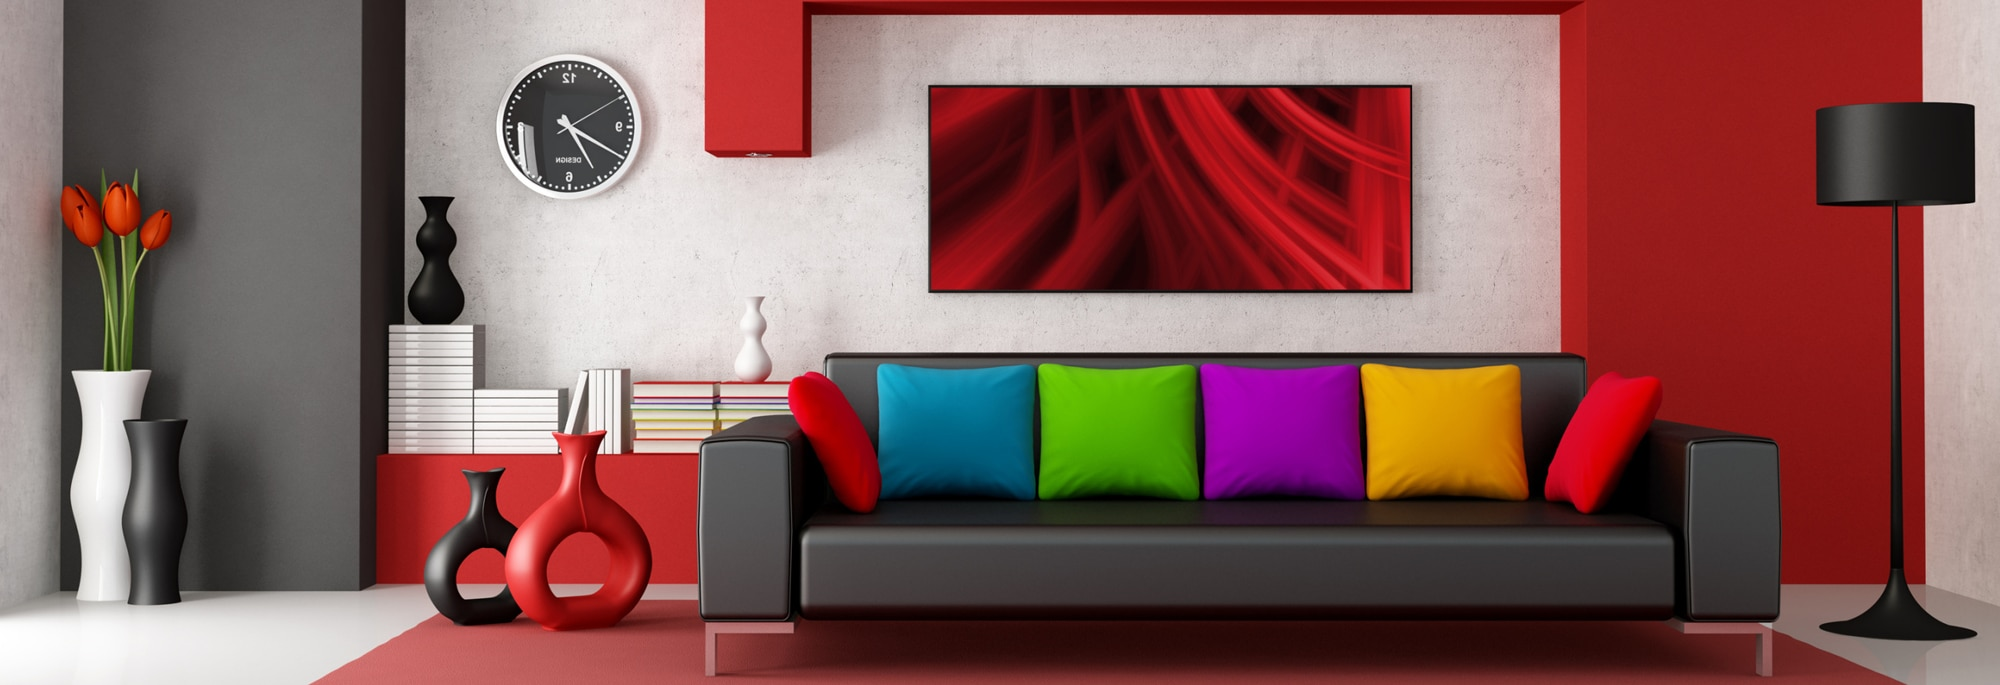 VELTECH INTERIORS in Chennai, WELCOME TO VELTECH INTERIORS! WE, THE ...